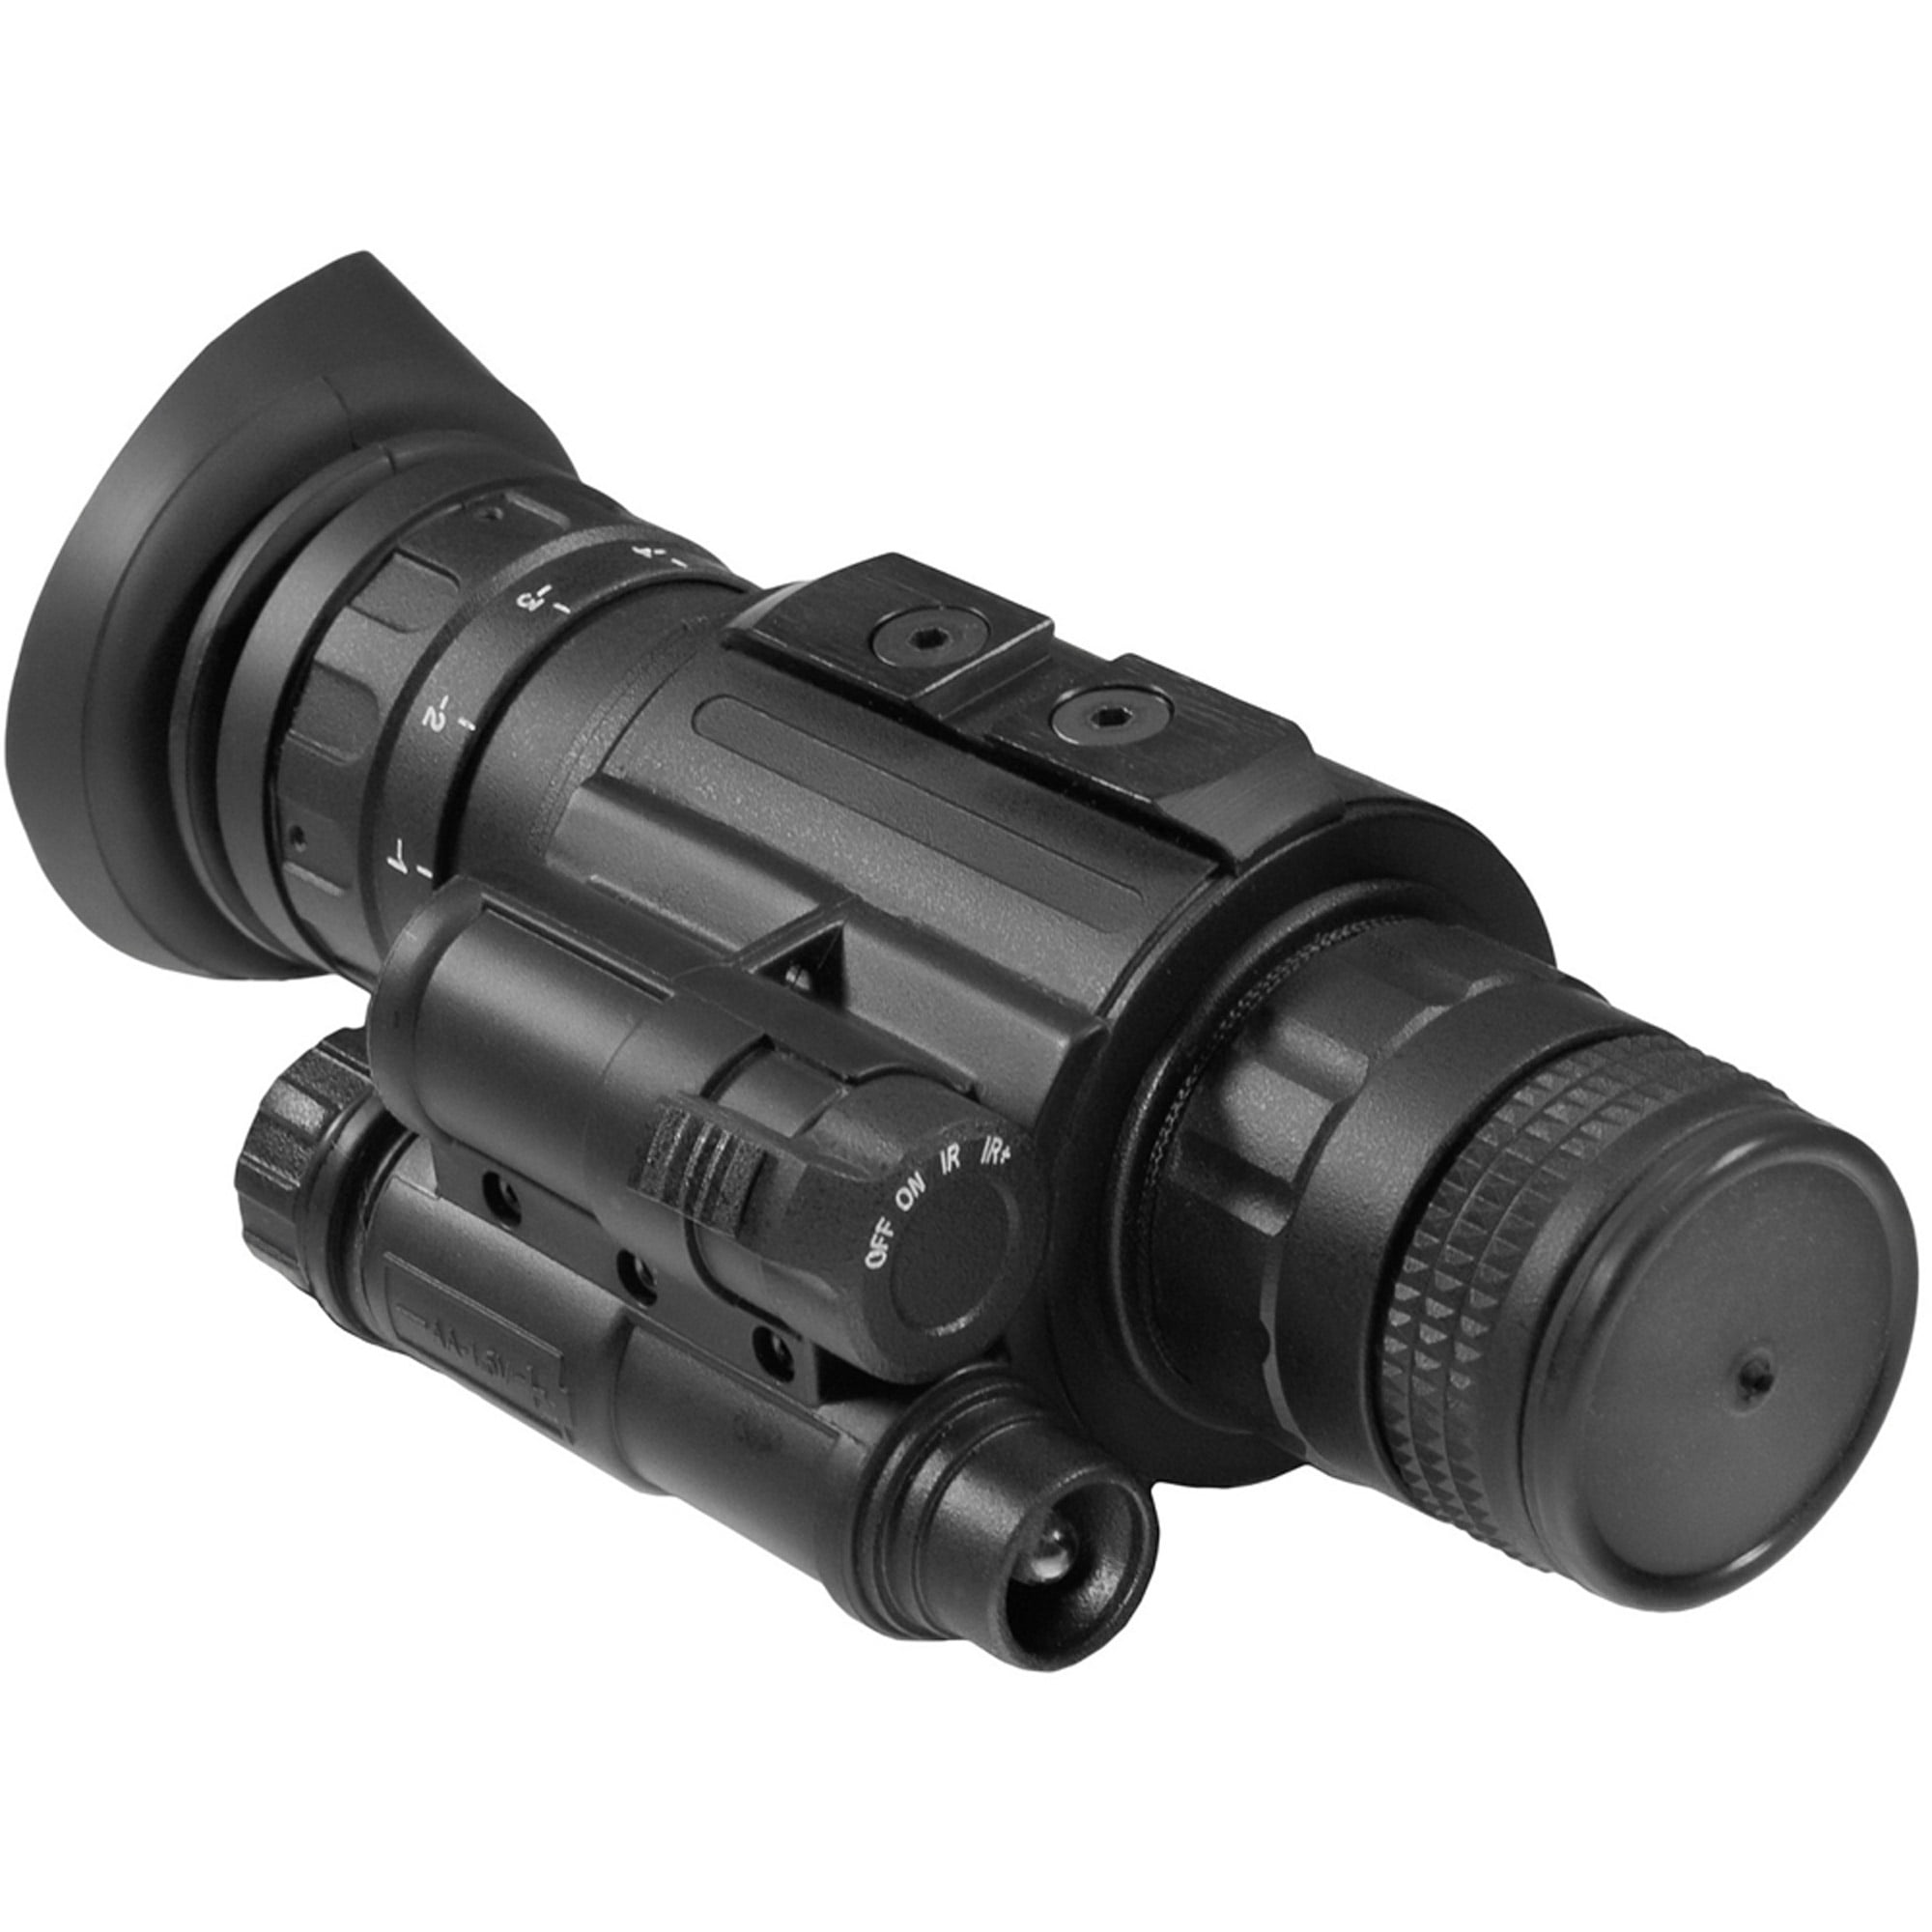 Click here to buy Luna Optics Gen-2+ Elite Mini Monocular 1x Elite Series by LUNA OPTICS.